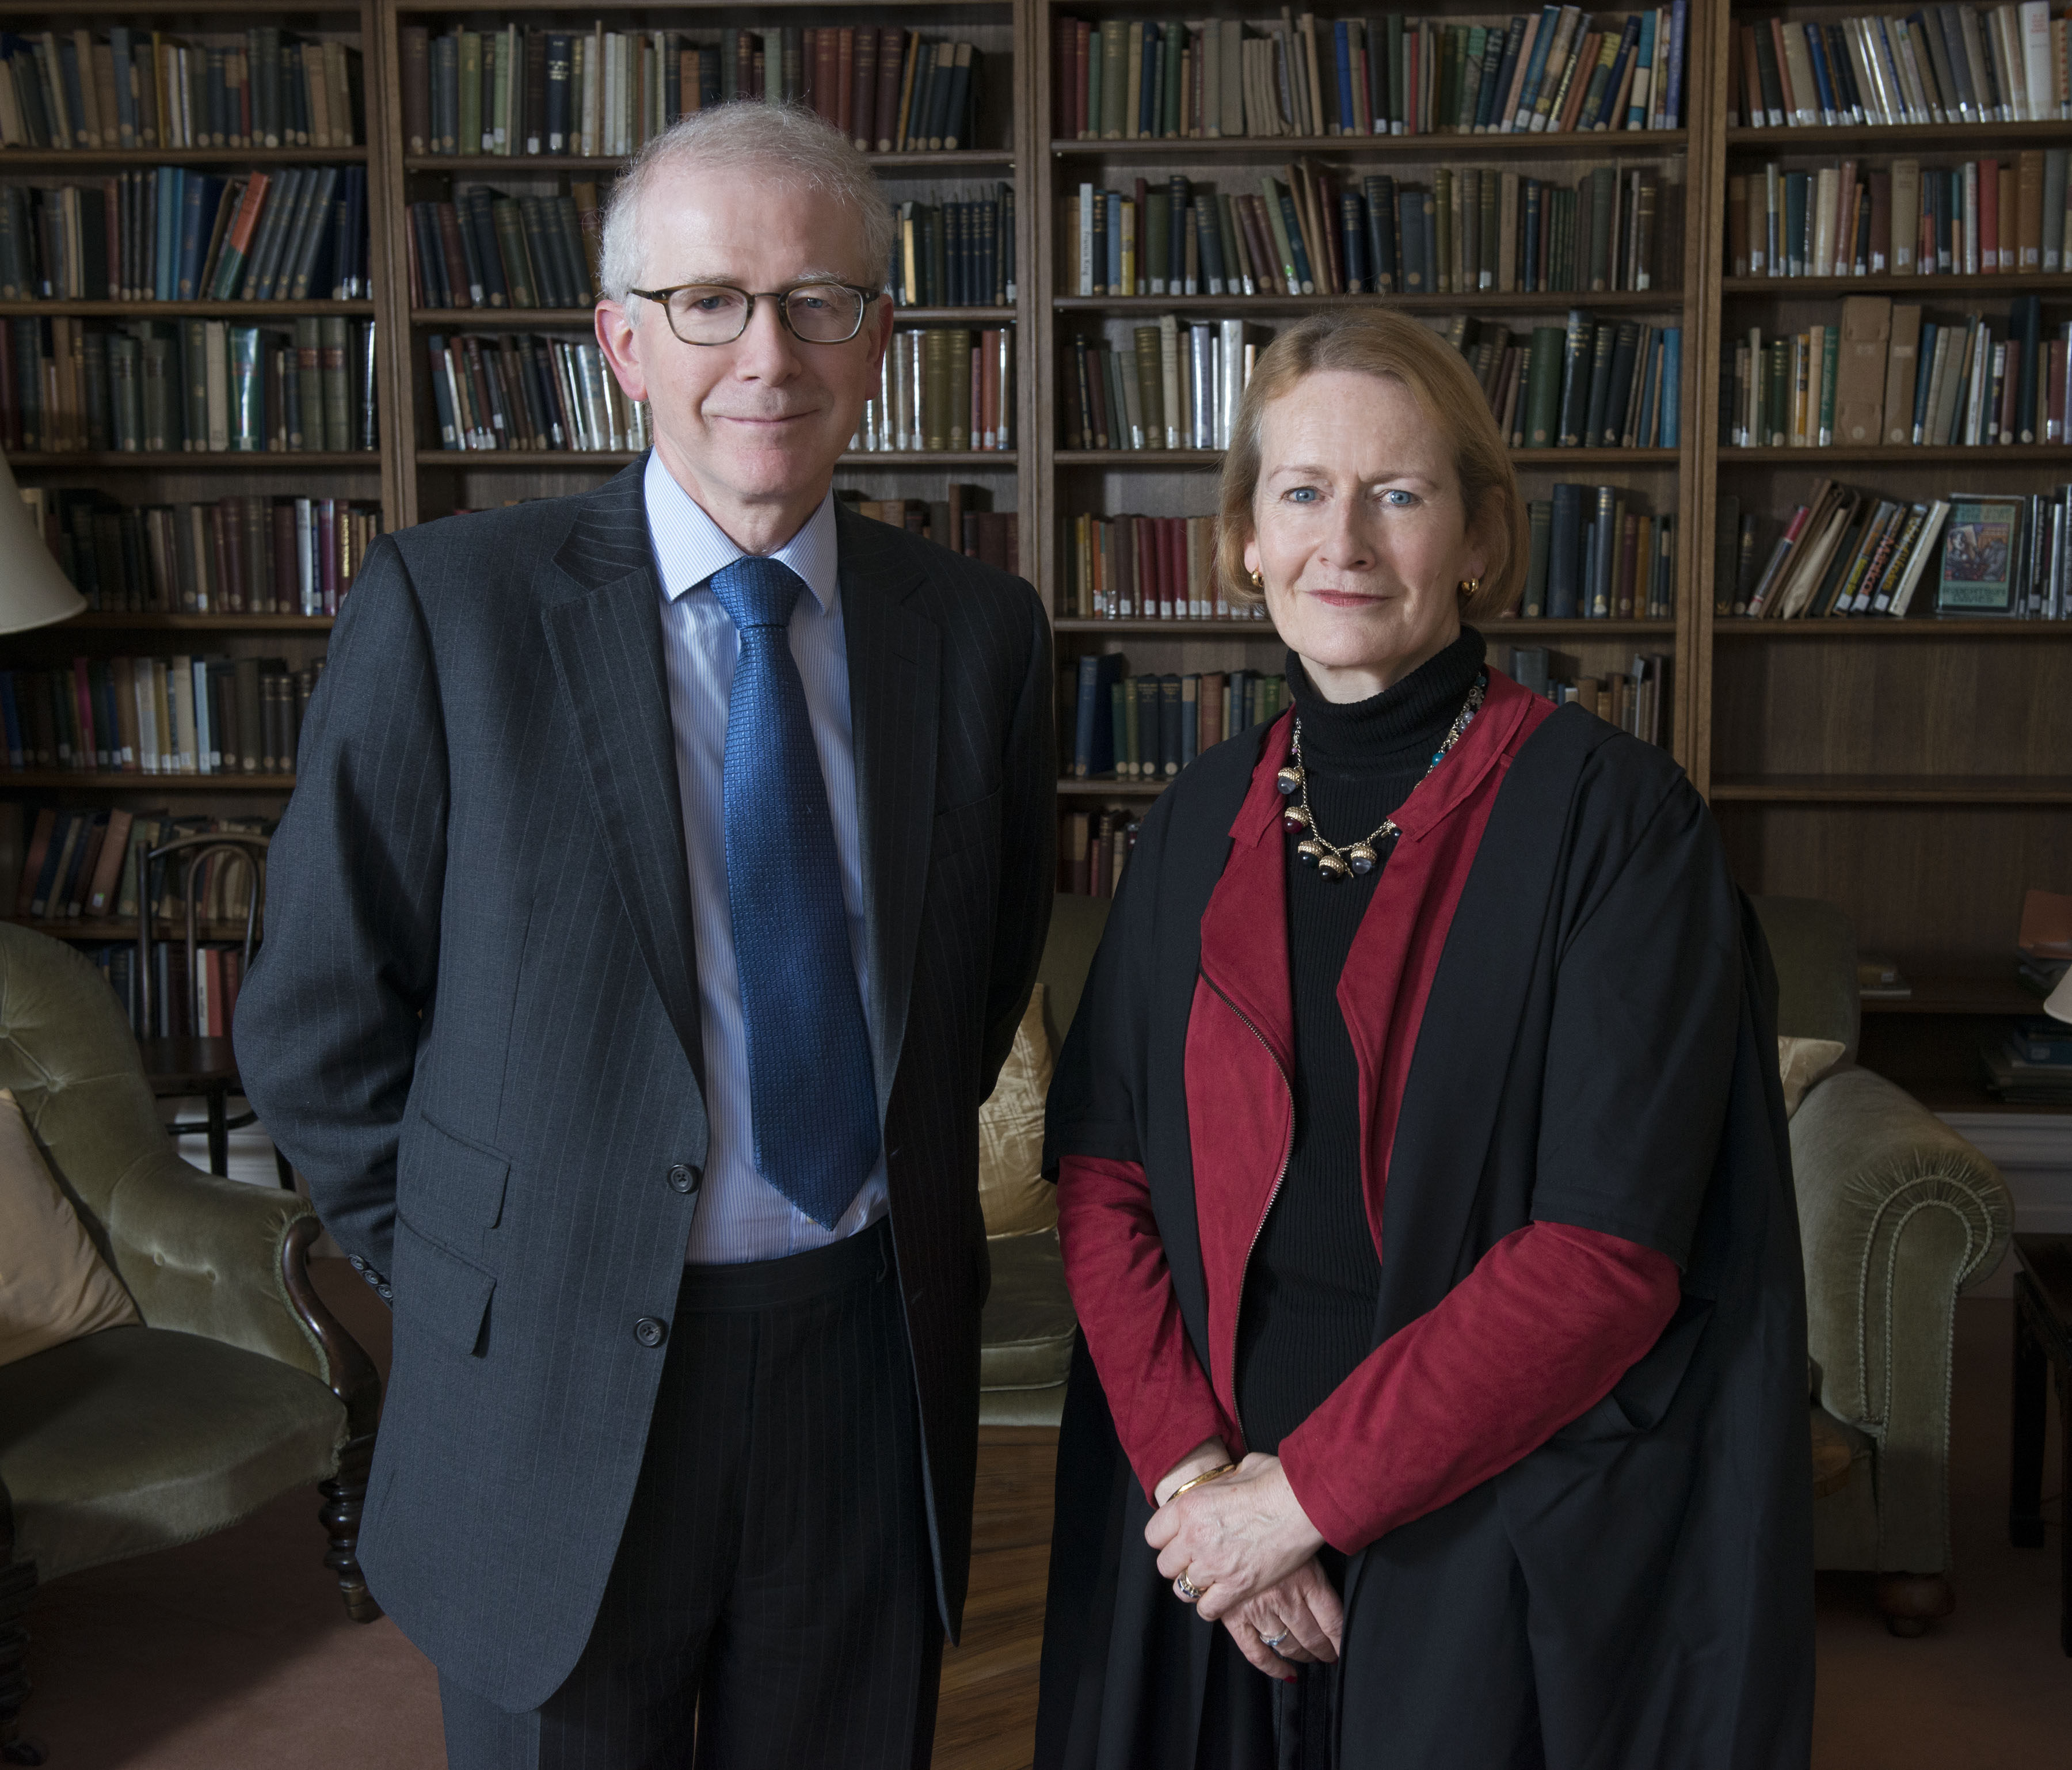 Dame Helen Ghosh (Master elect) and Lord Robert Reed (Visitor) (photo: Rob Judges)